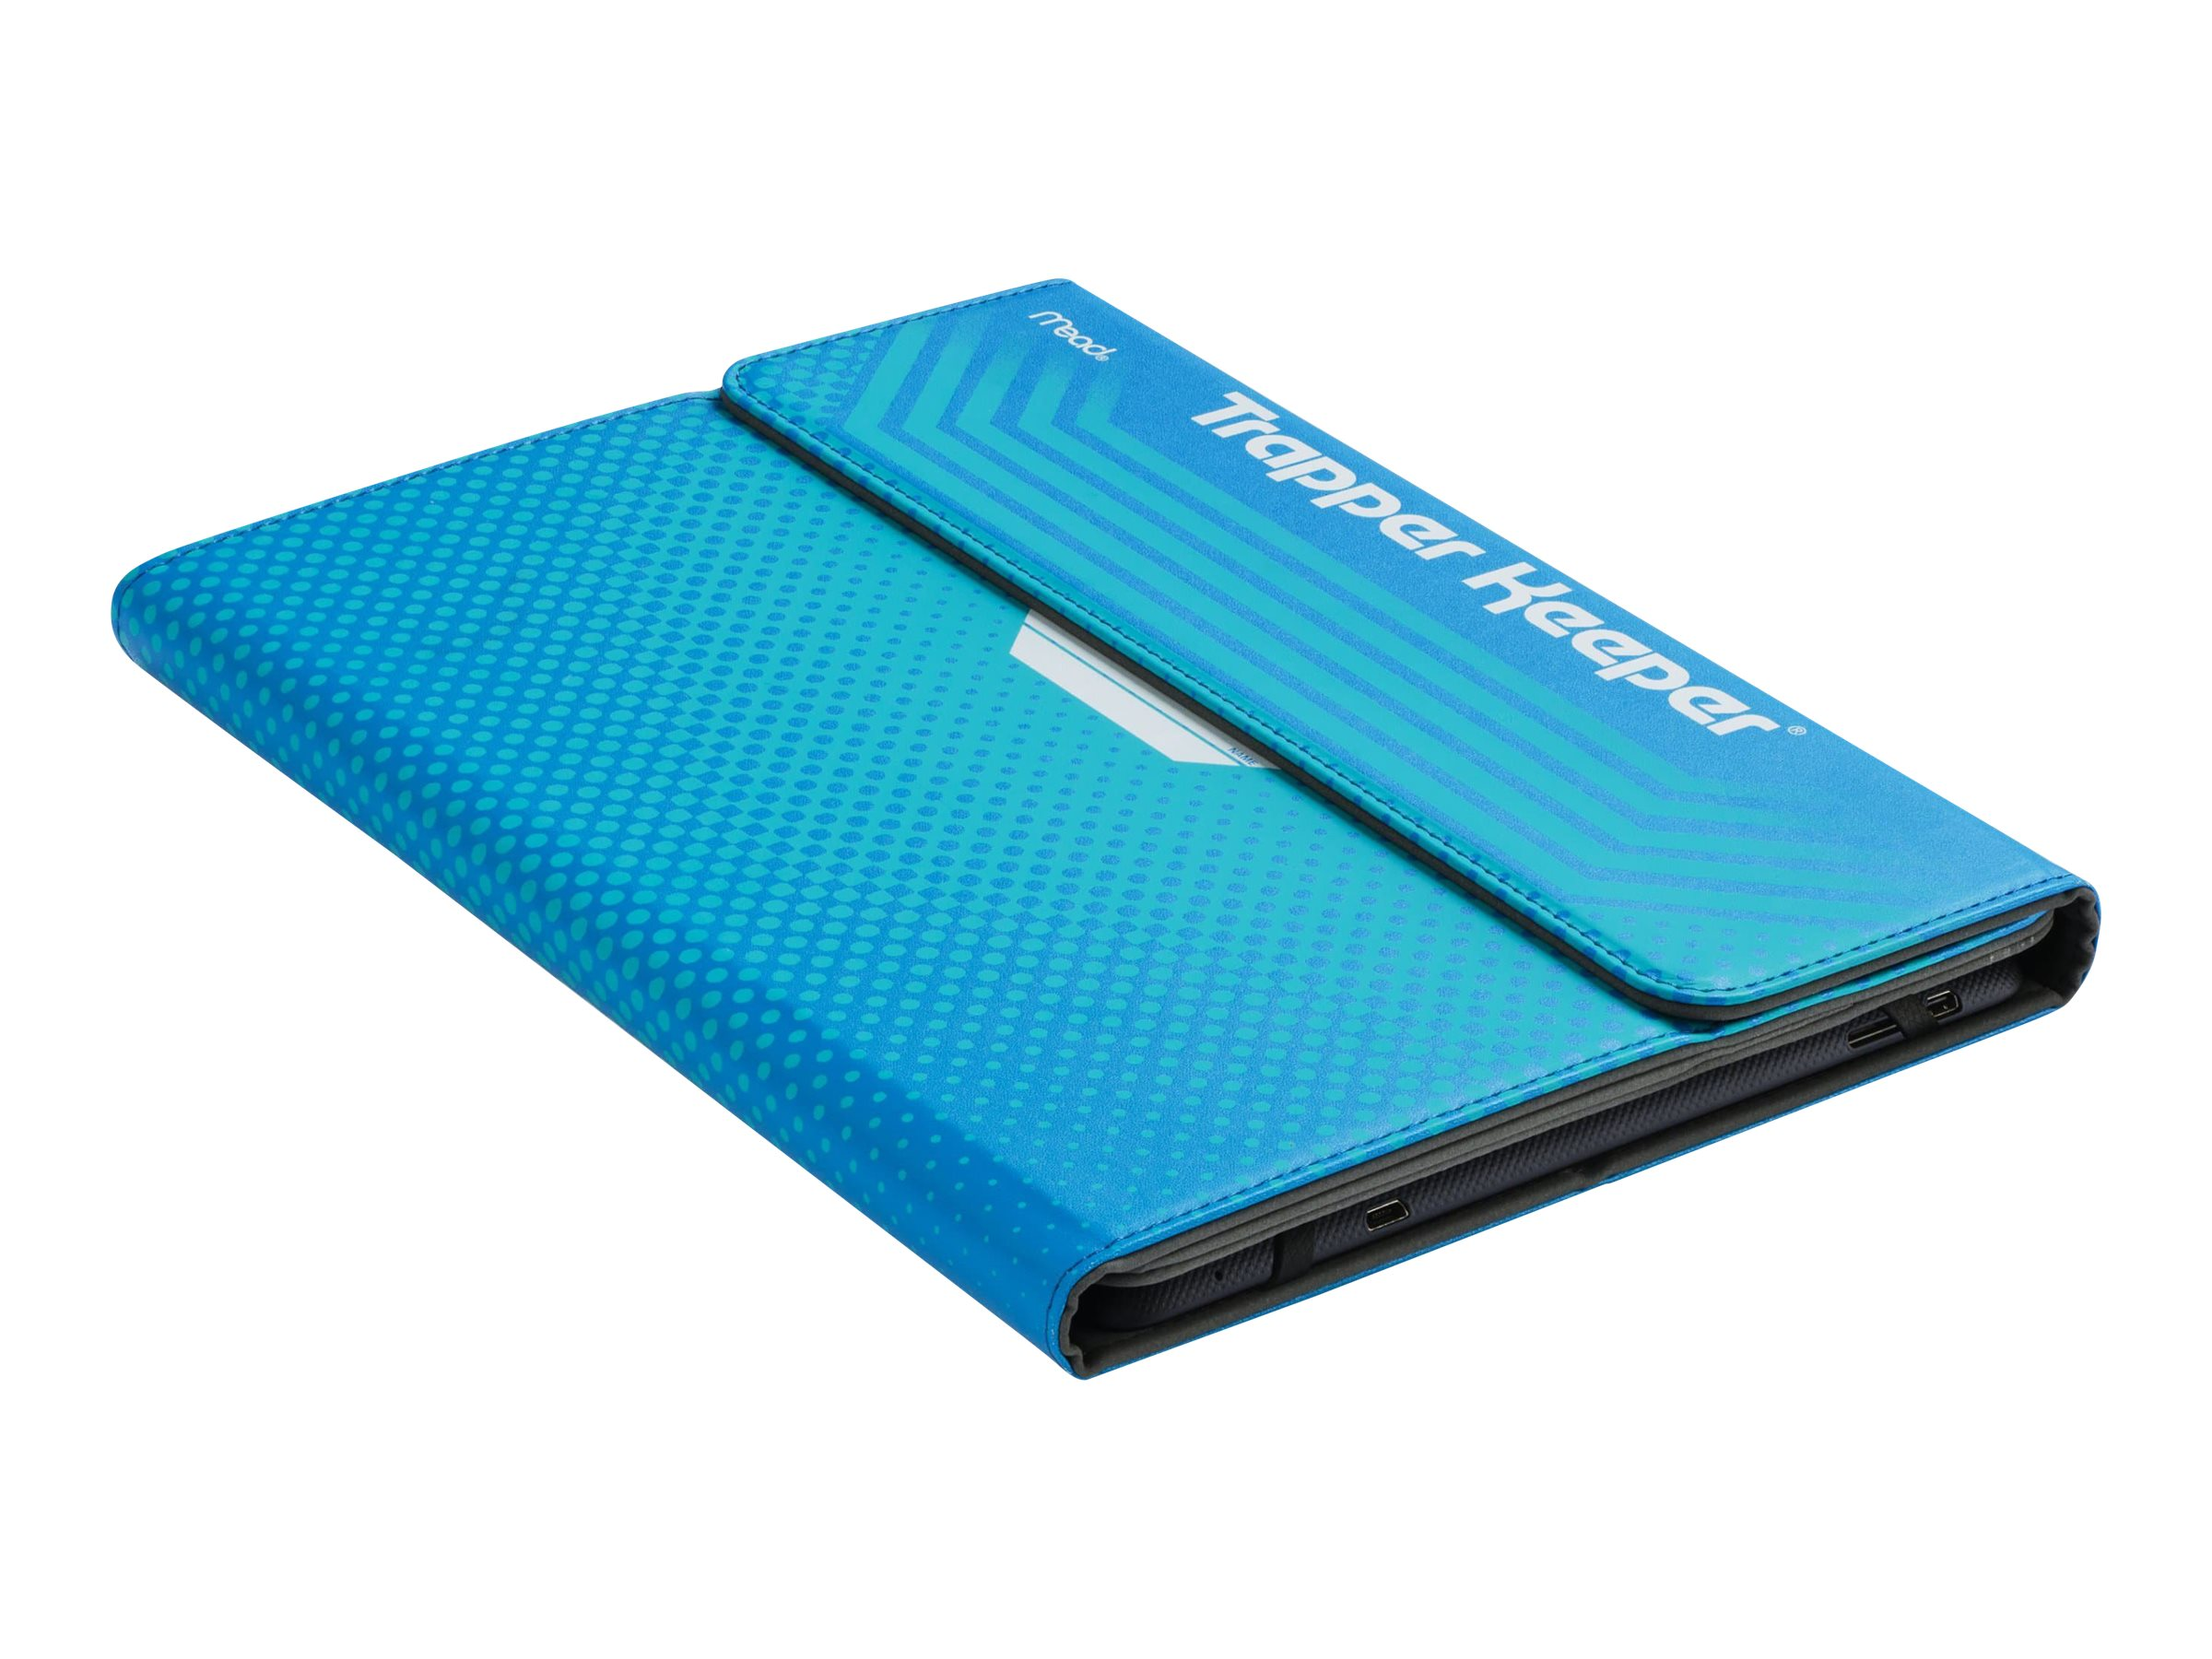 Kensington Trapper Keeper Universal Case for 10 Tablets, Blue, K97326WW